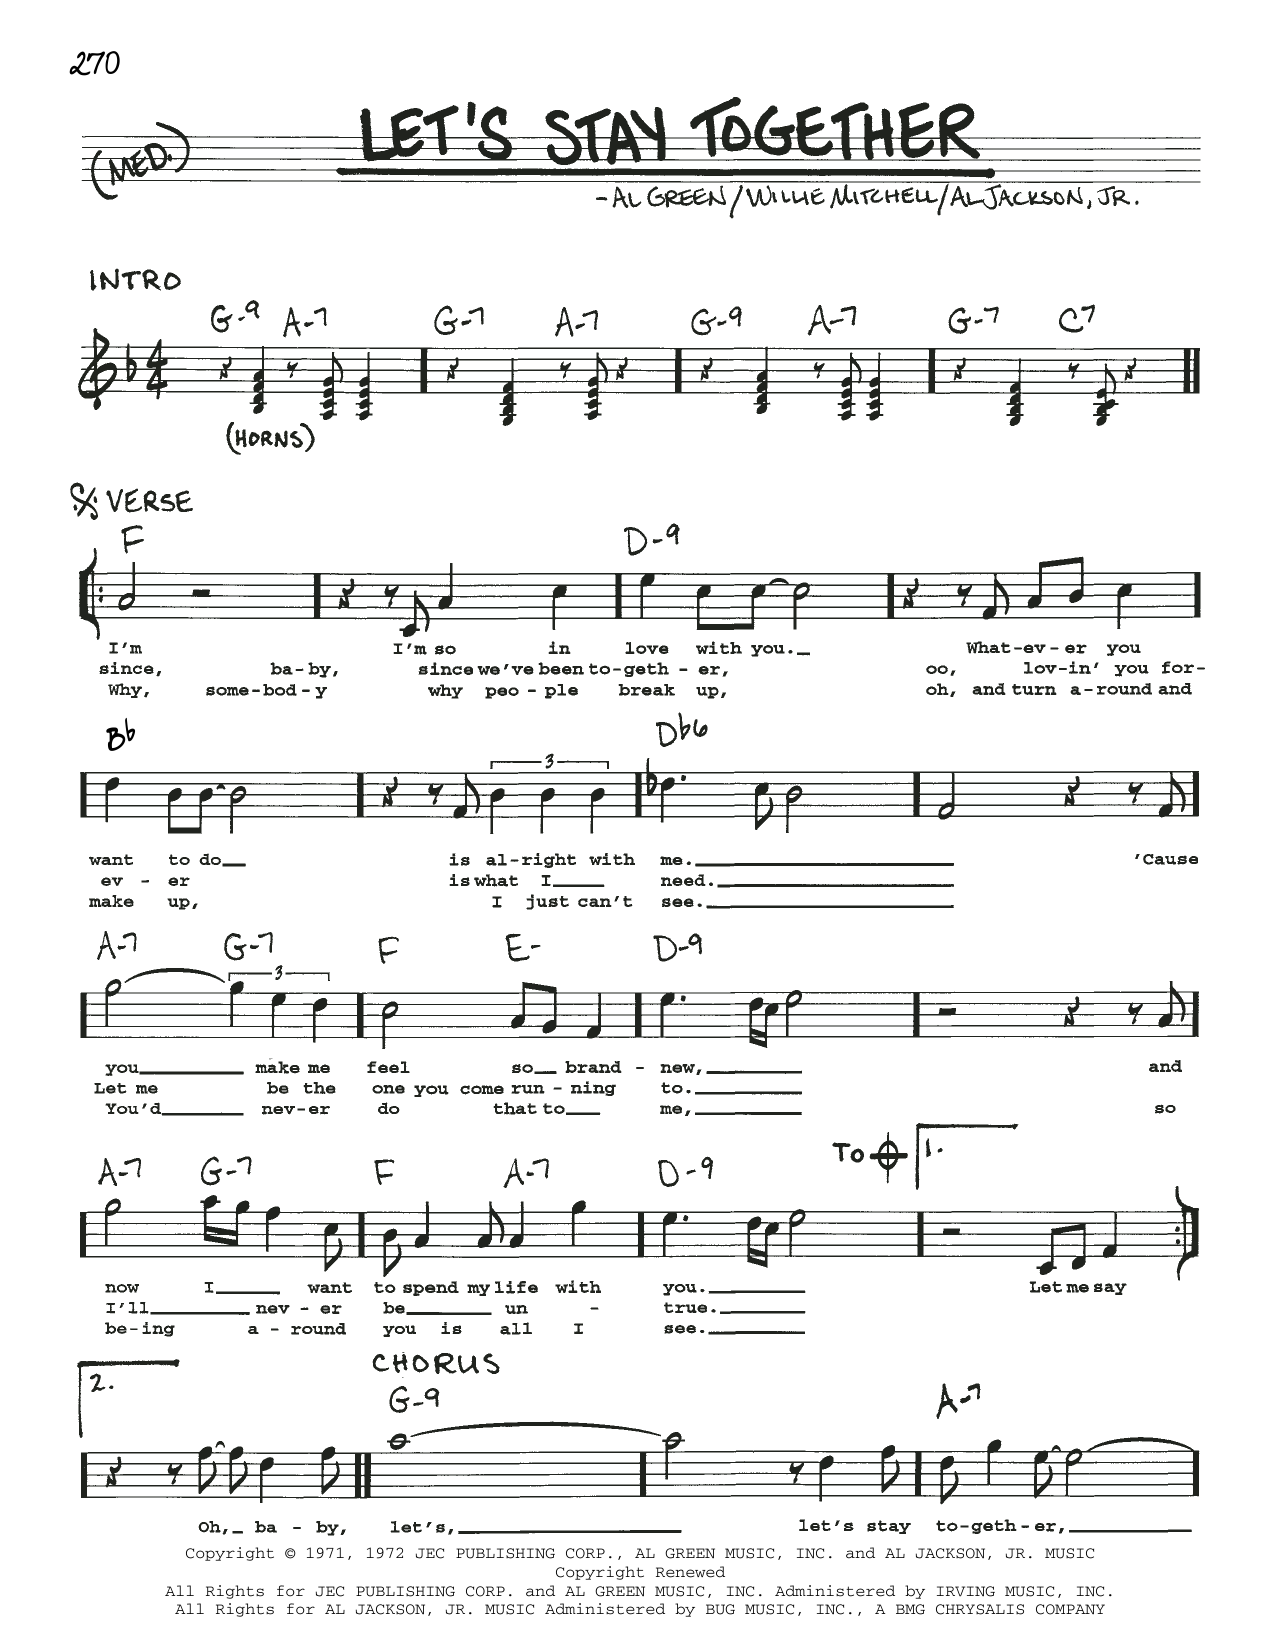 Al Green Let's Stay Together sheet music notes and chords